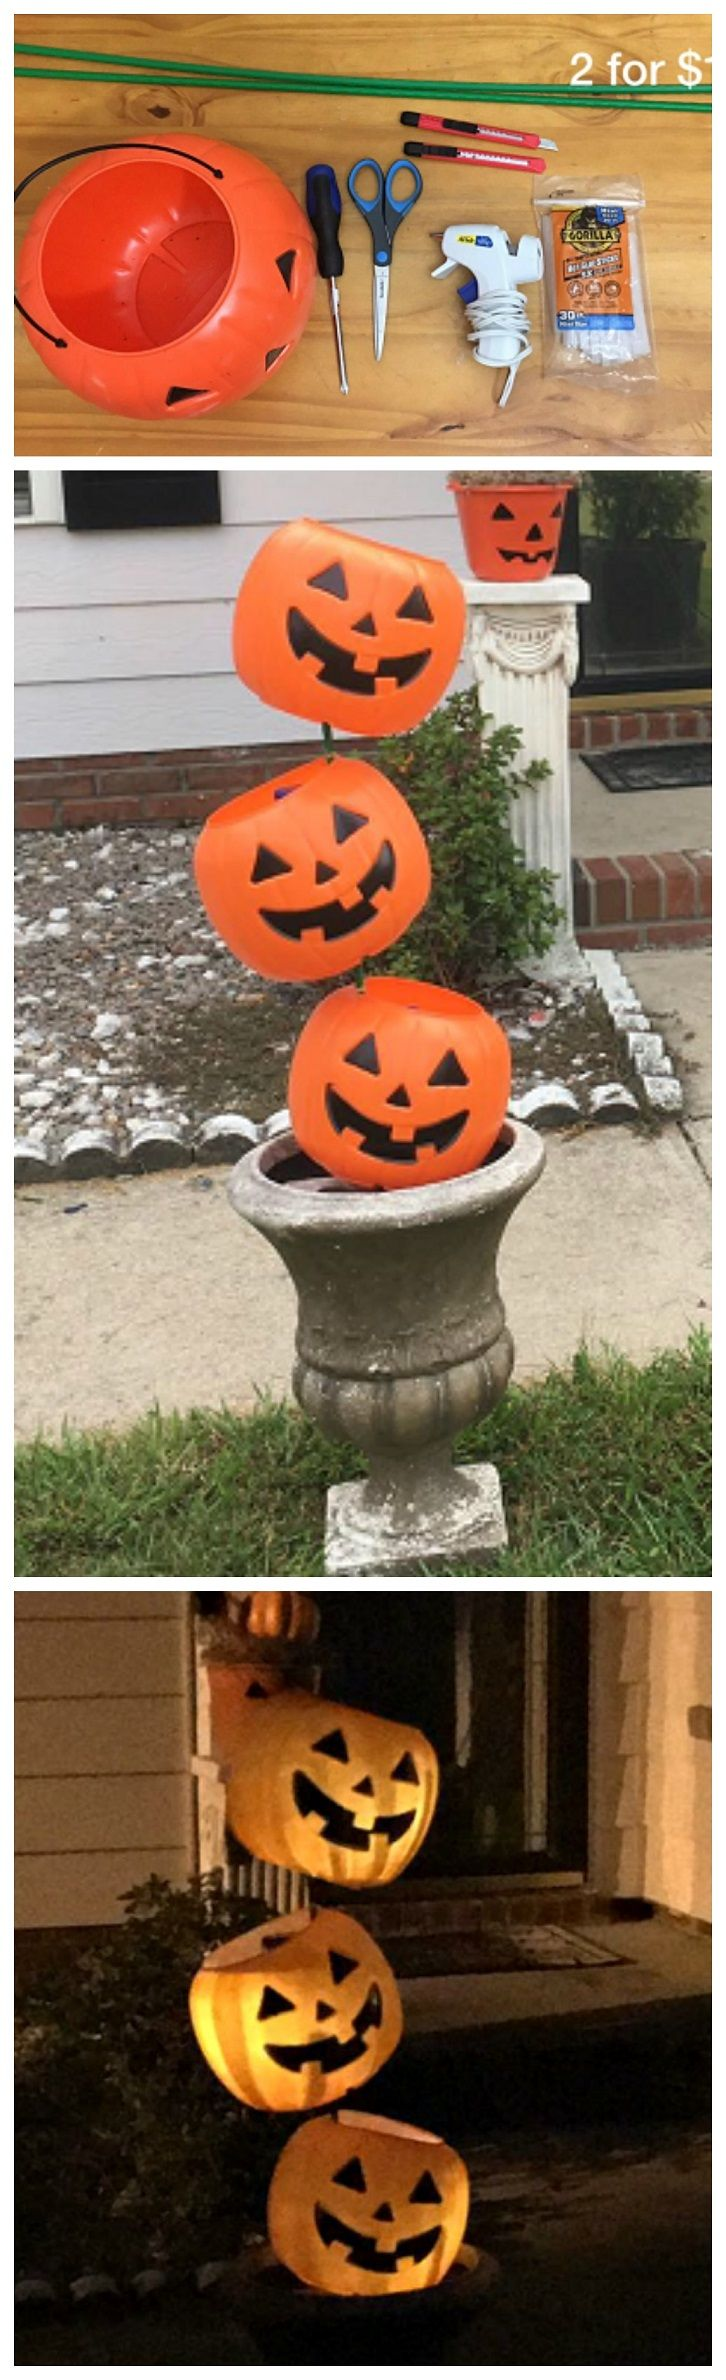 Cheap halloween yard decorations - Make A Plastic Pumpkin Pail Tipsy Decoration For Halloween Such A Cheap And Easy Craft